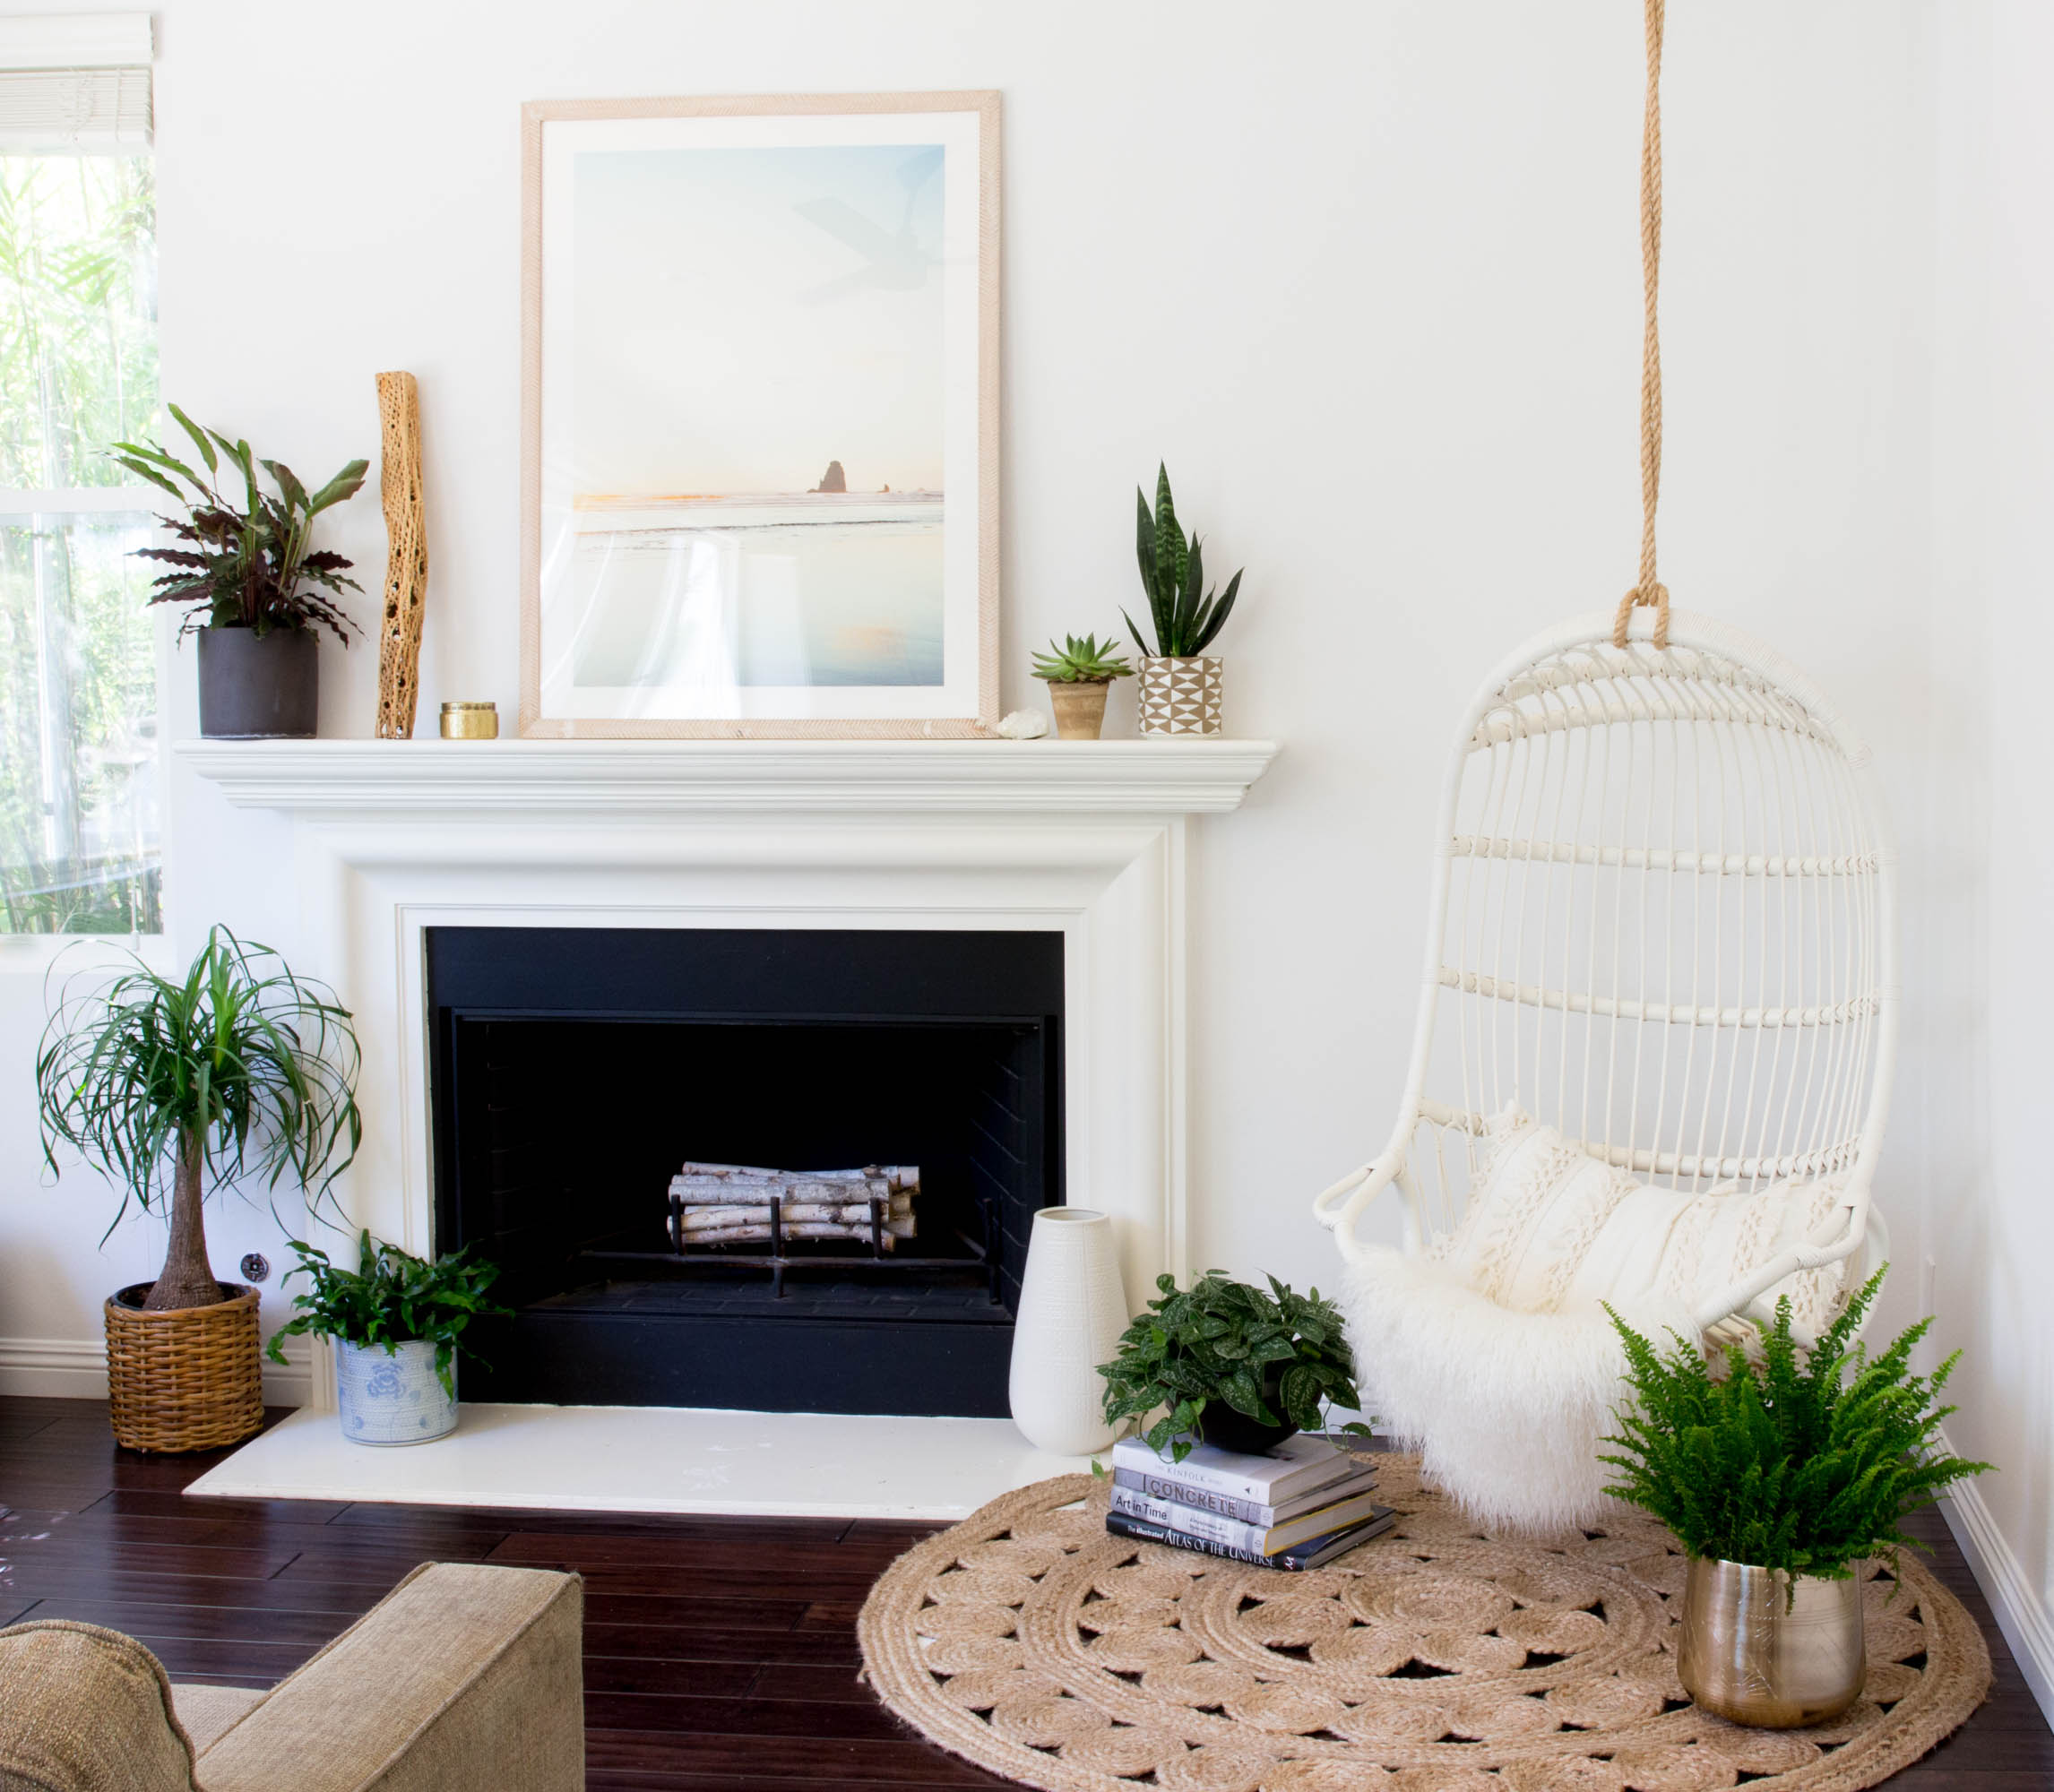 3 Easy tips to pick the best paint color for any room - Anita Yokota